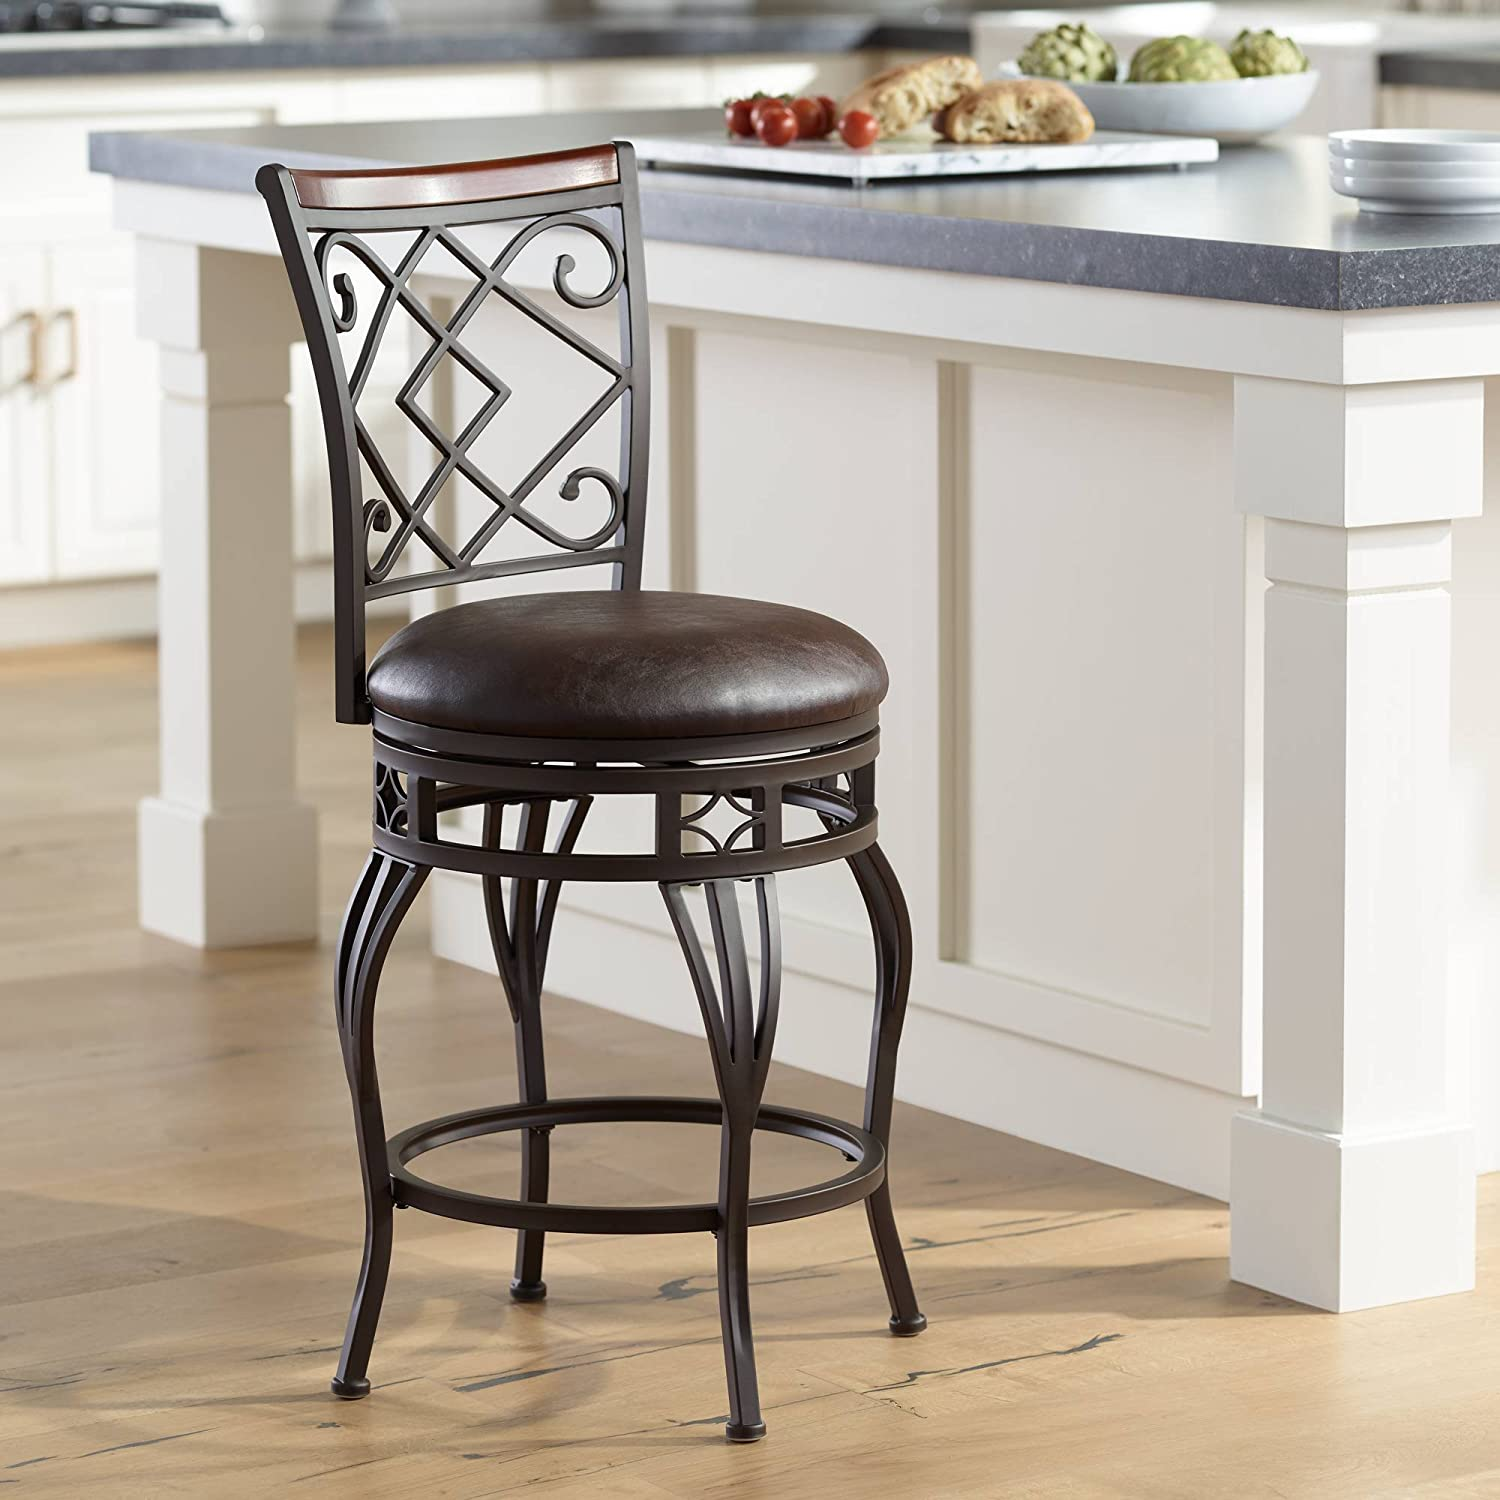 Hartley 25 Wood And Bronze Metal Swivel Counter Stool Kensington Hill Kitchen Dining